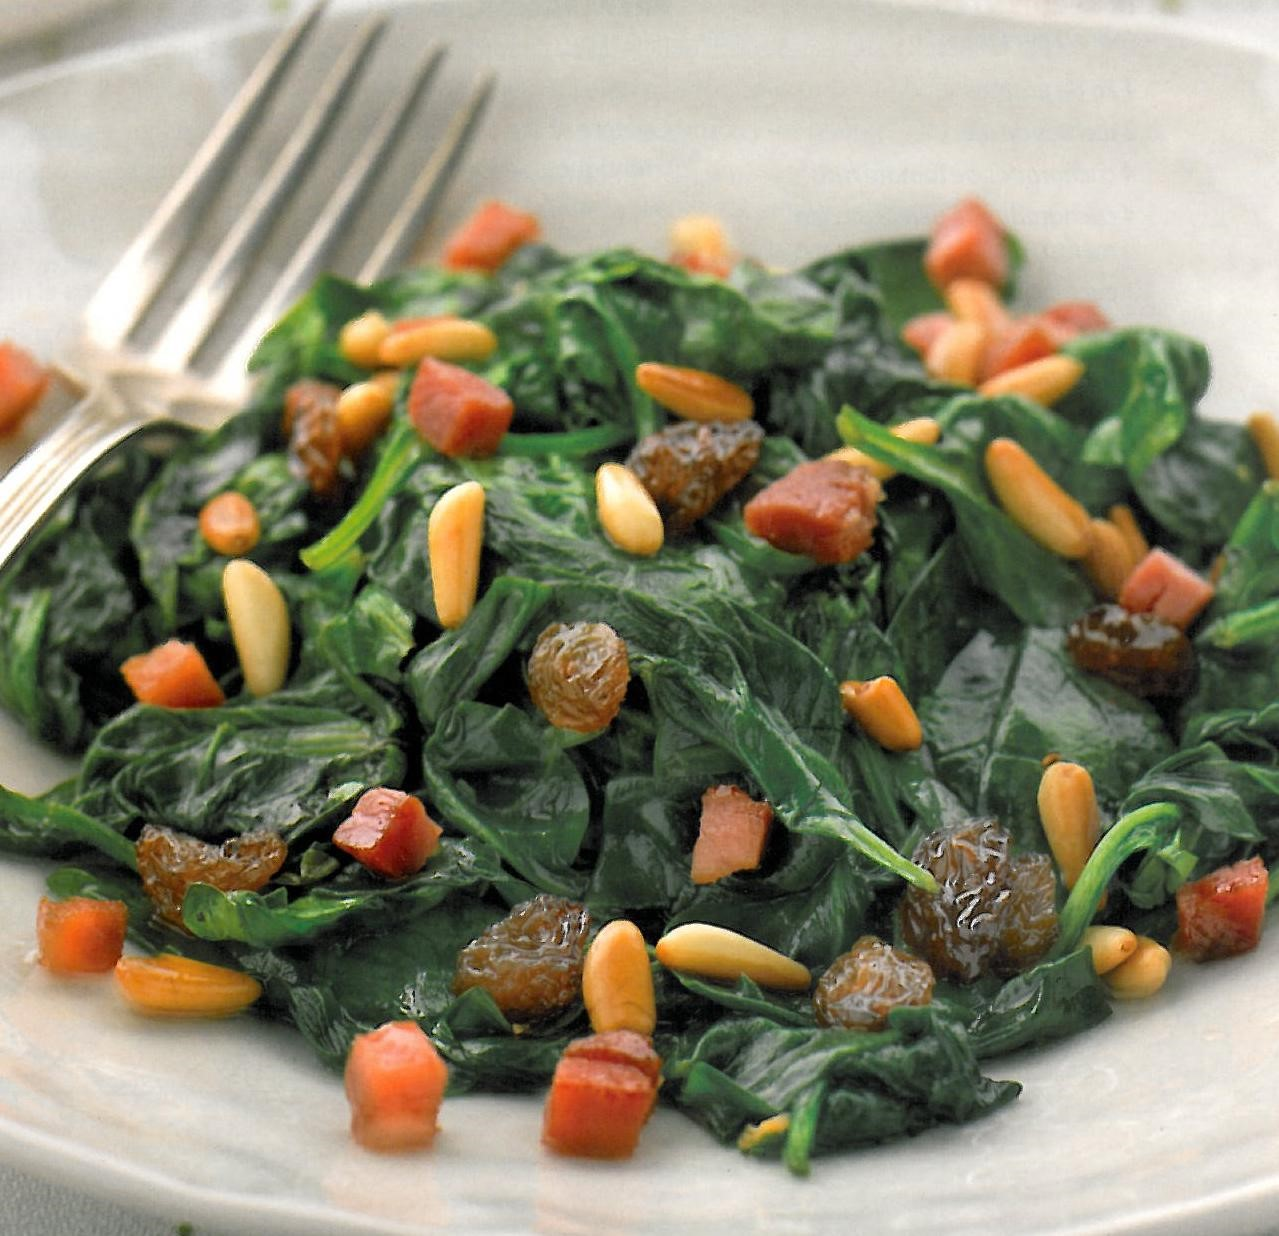 Spinach with Raisins and Pine Nuts